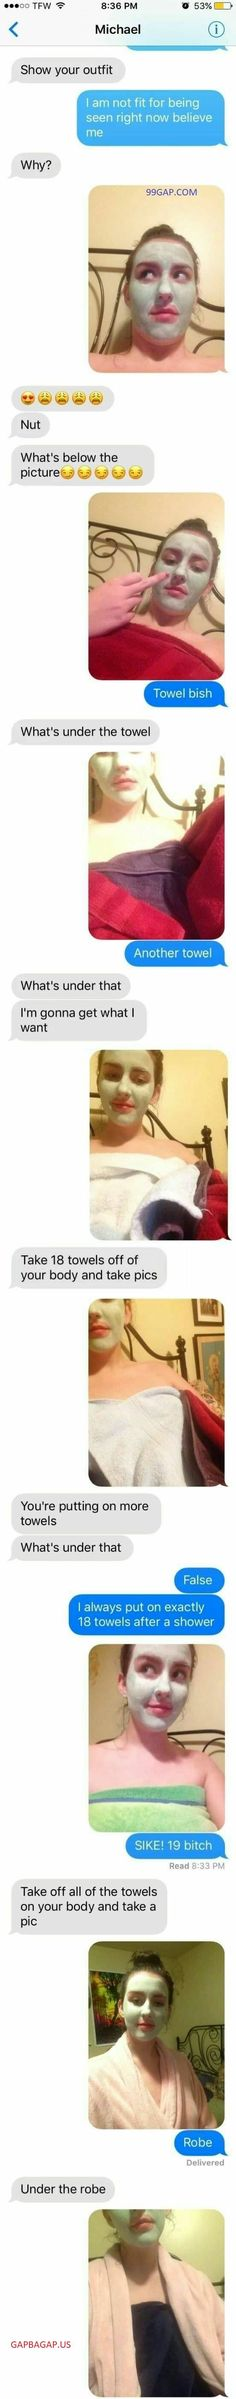 Hilarious Texts Collection About Man vs. Woman